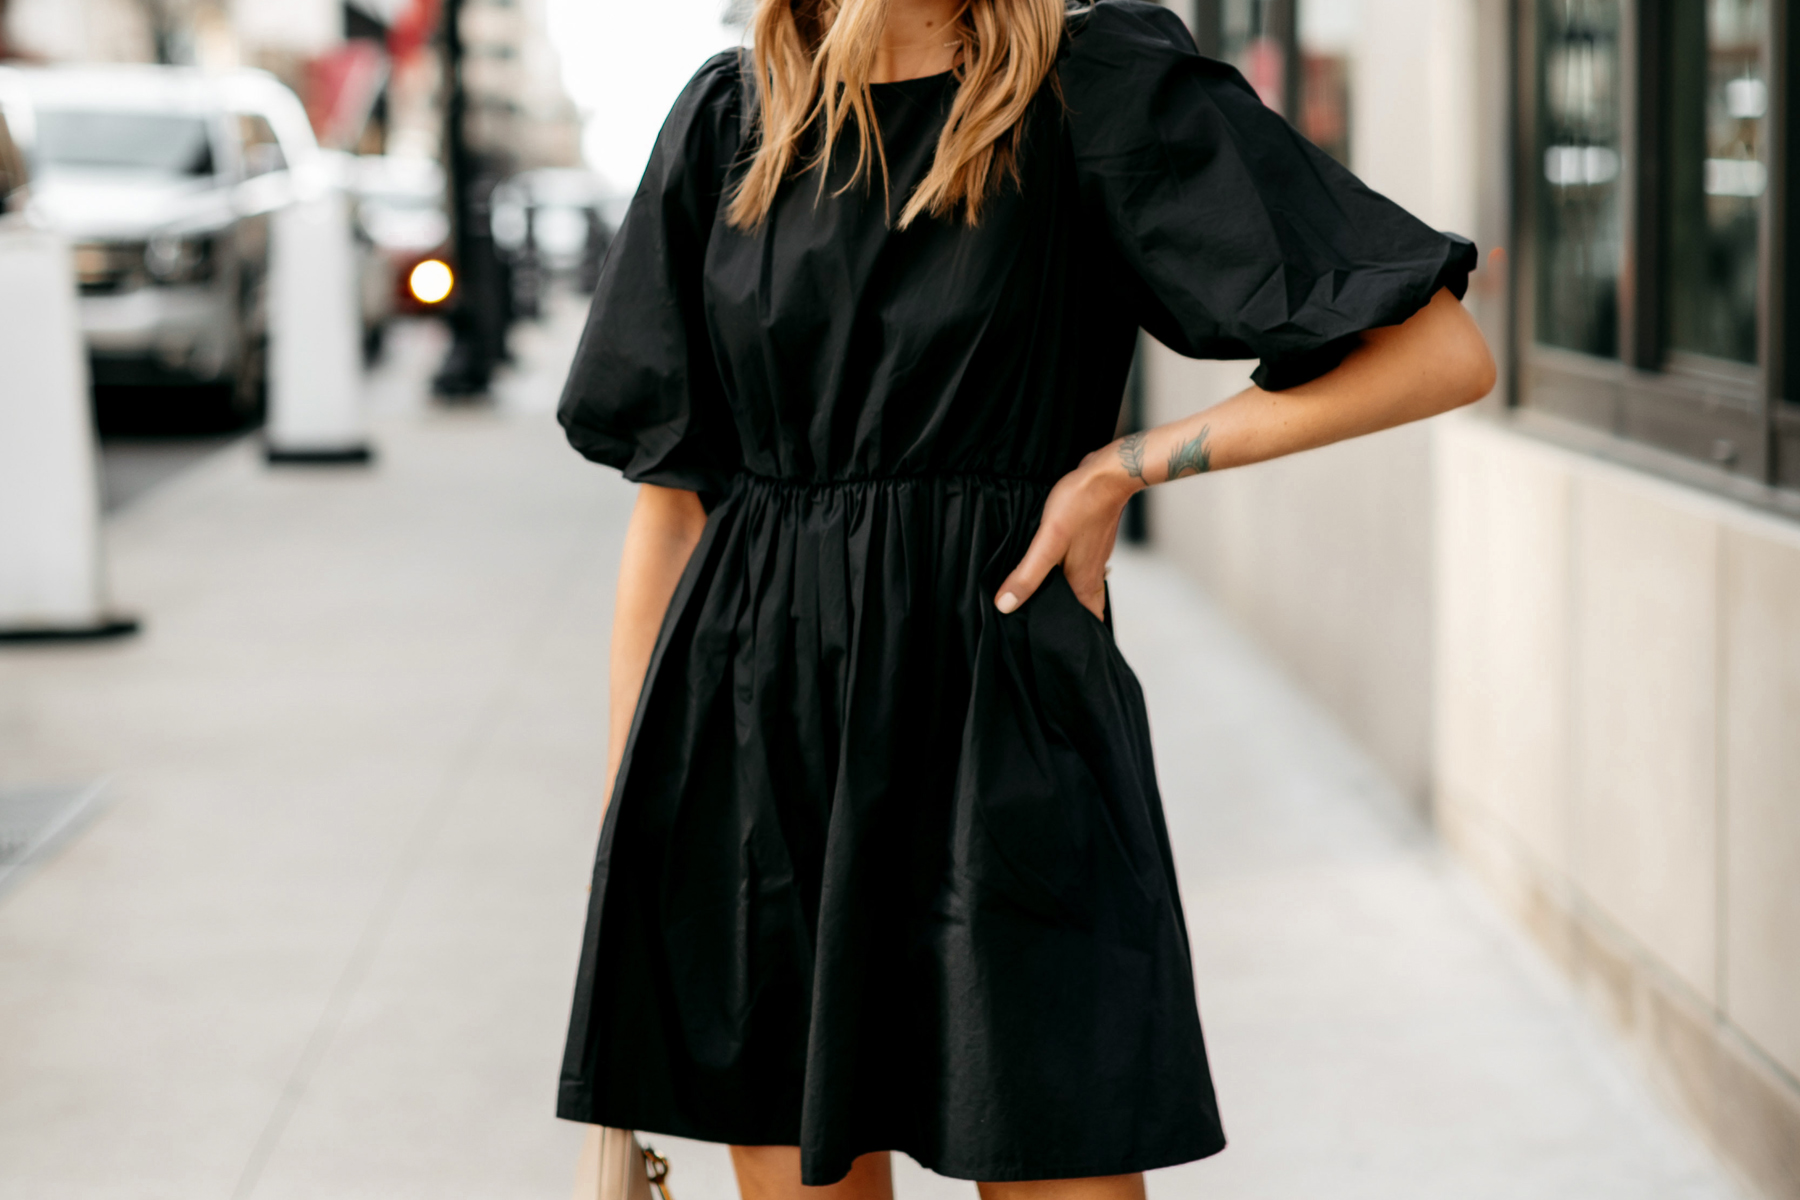 Fashion Jackson Wearing Madewell Little Black Dress Outfit 2